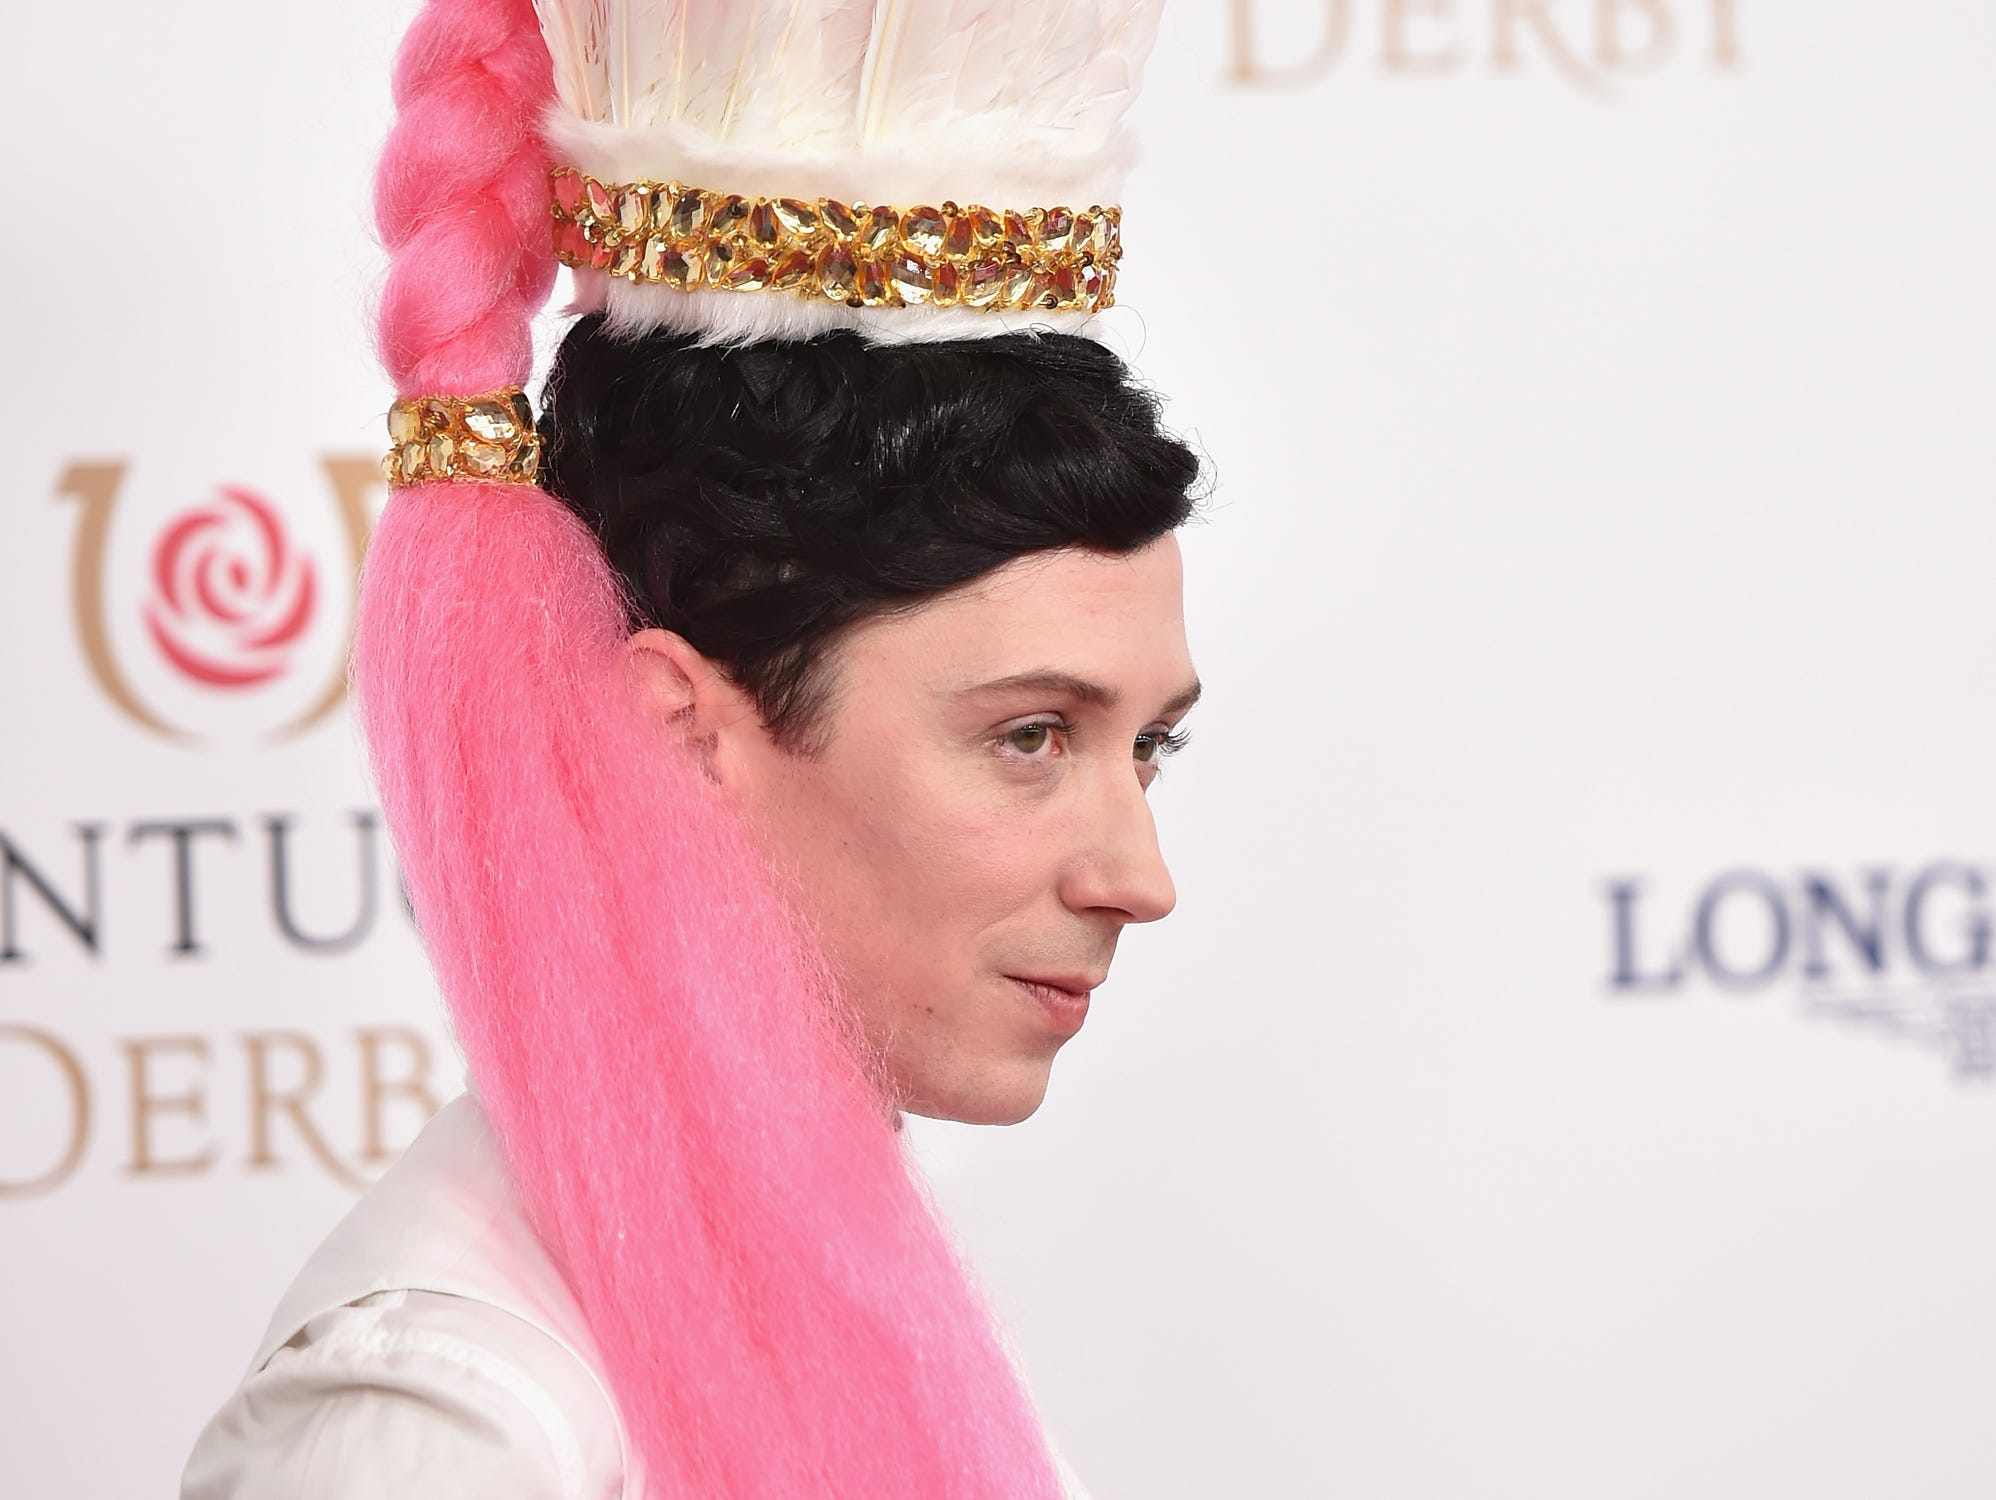 Figure skater Johnny Weir attends the 142nd Kentucky Derby at Churchill Downs on May 07, 2016 in Louisville, Kentucky.